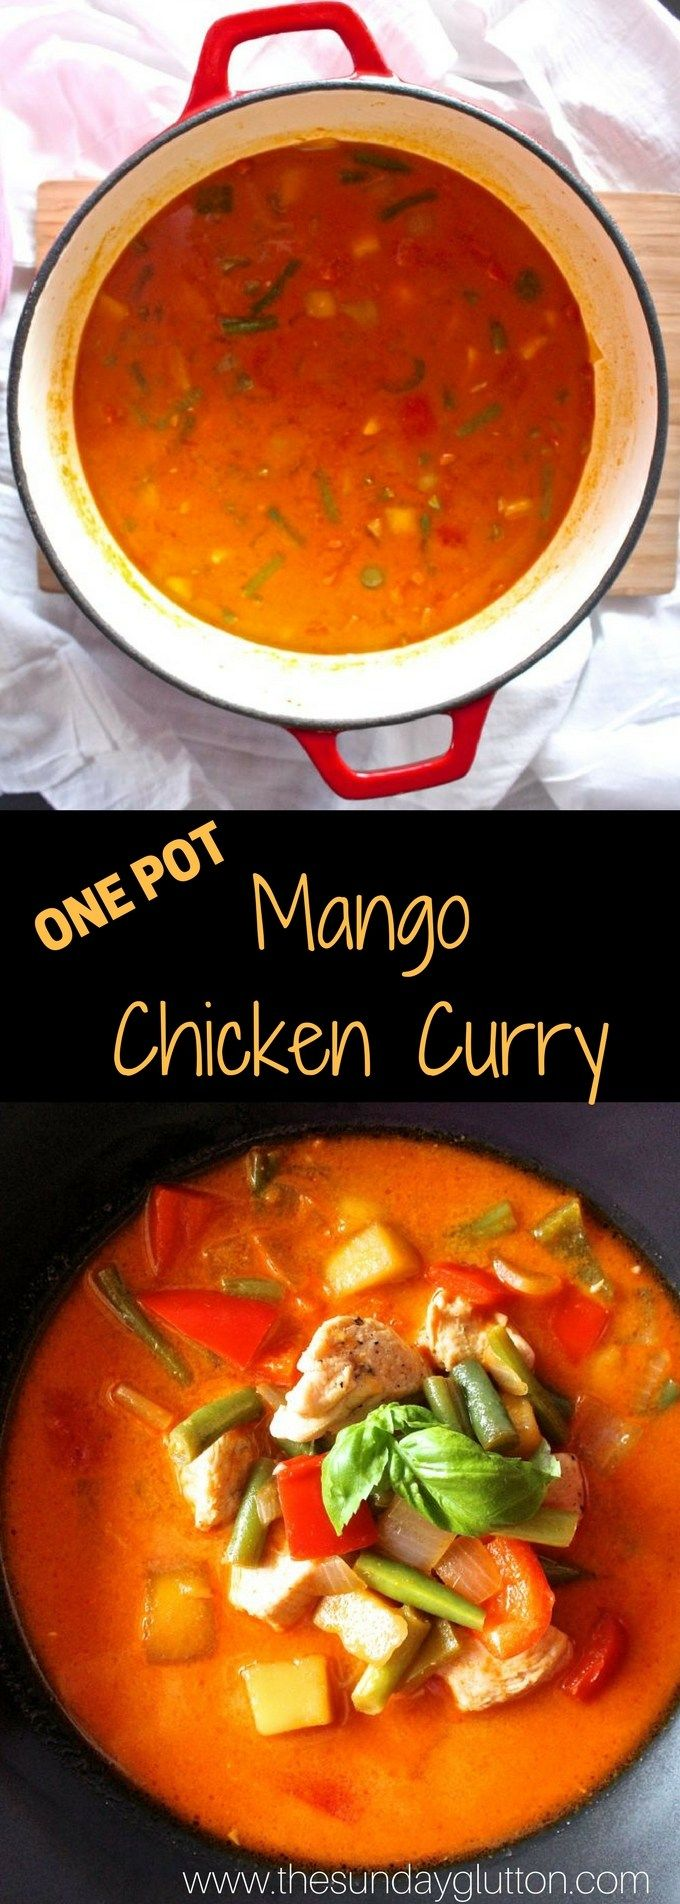 Mango Chicken Curry is a hearty blend of chicken, vegetables, and a creamy, curry base. With a touch of sweetness from ripe mangoes, this curry is super flavorful, but mild enough for the little ones. It comes together super quick and only requires one pot!